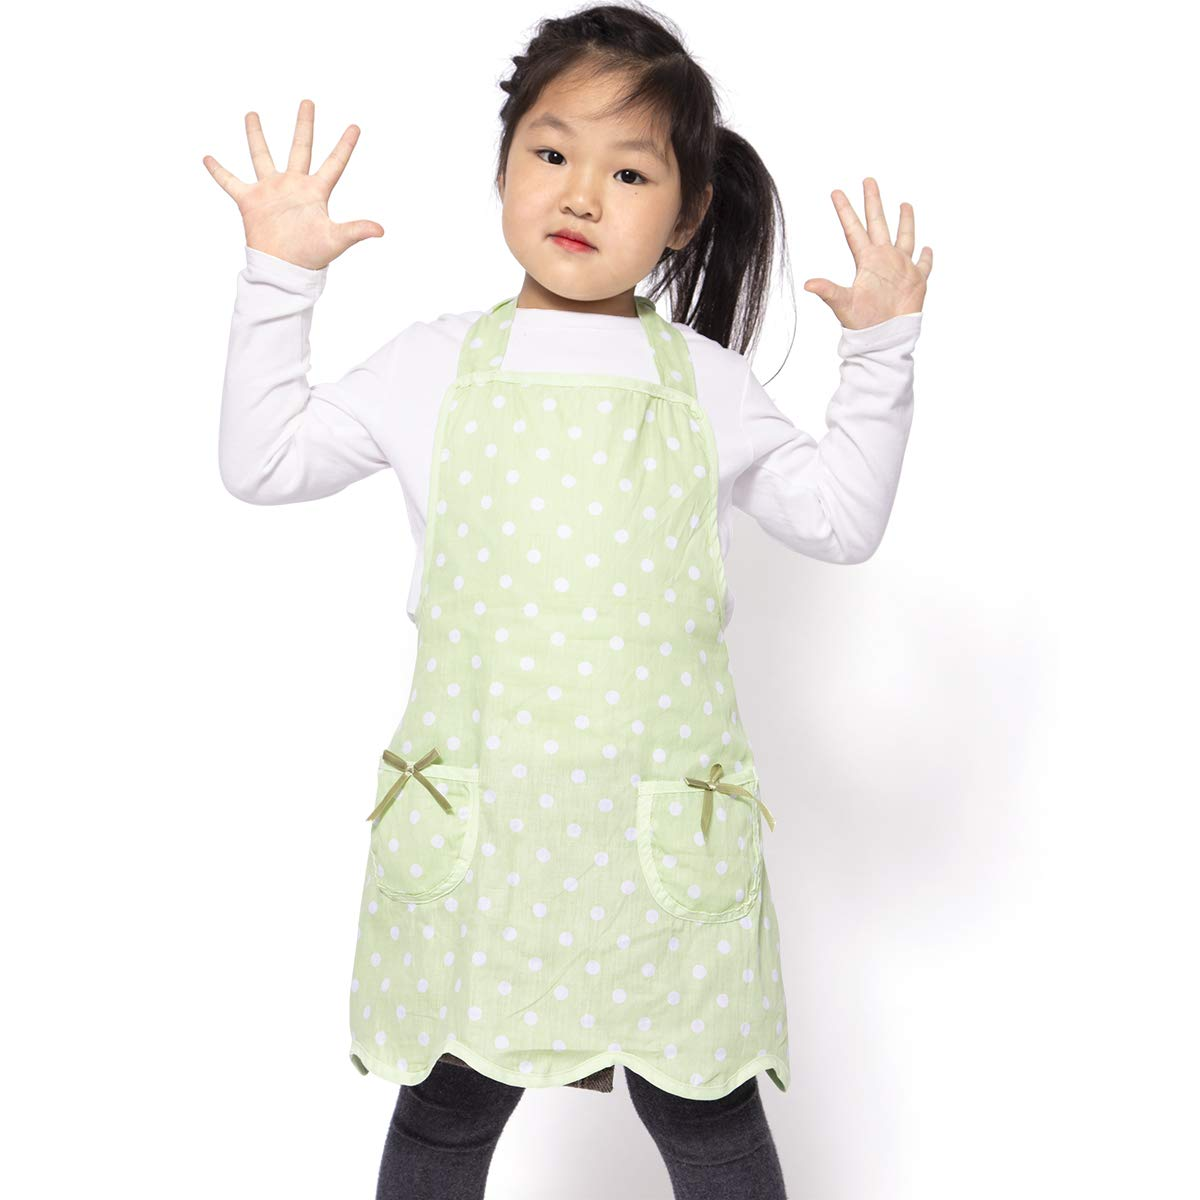 NEOVIVA Kids Apron with Pockets for Toddlers, Lightweight Child Apron for Play Kitchen, Style Wendy, Polka Dots Green